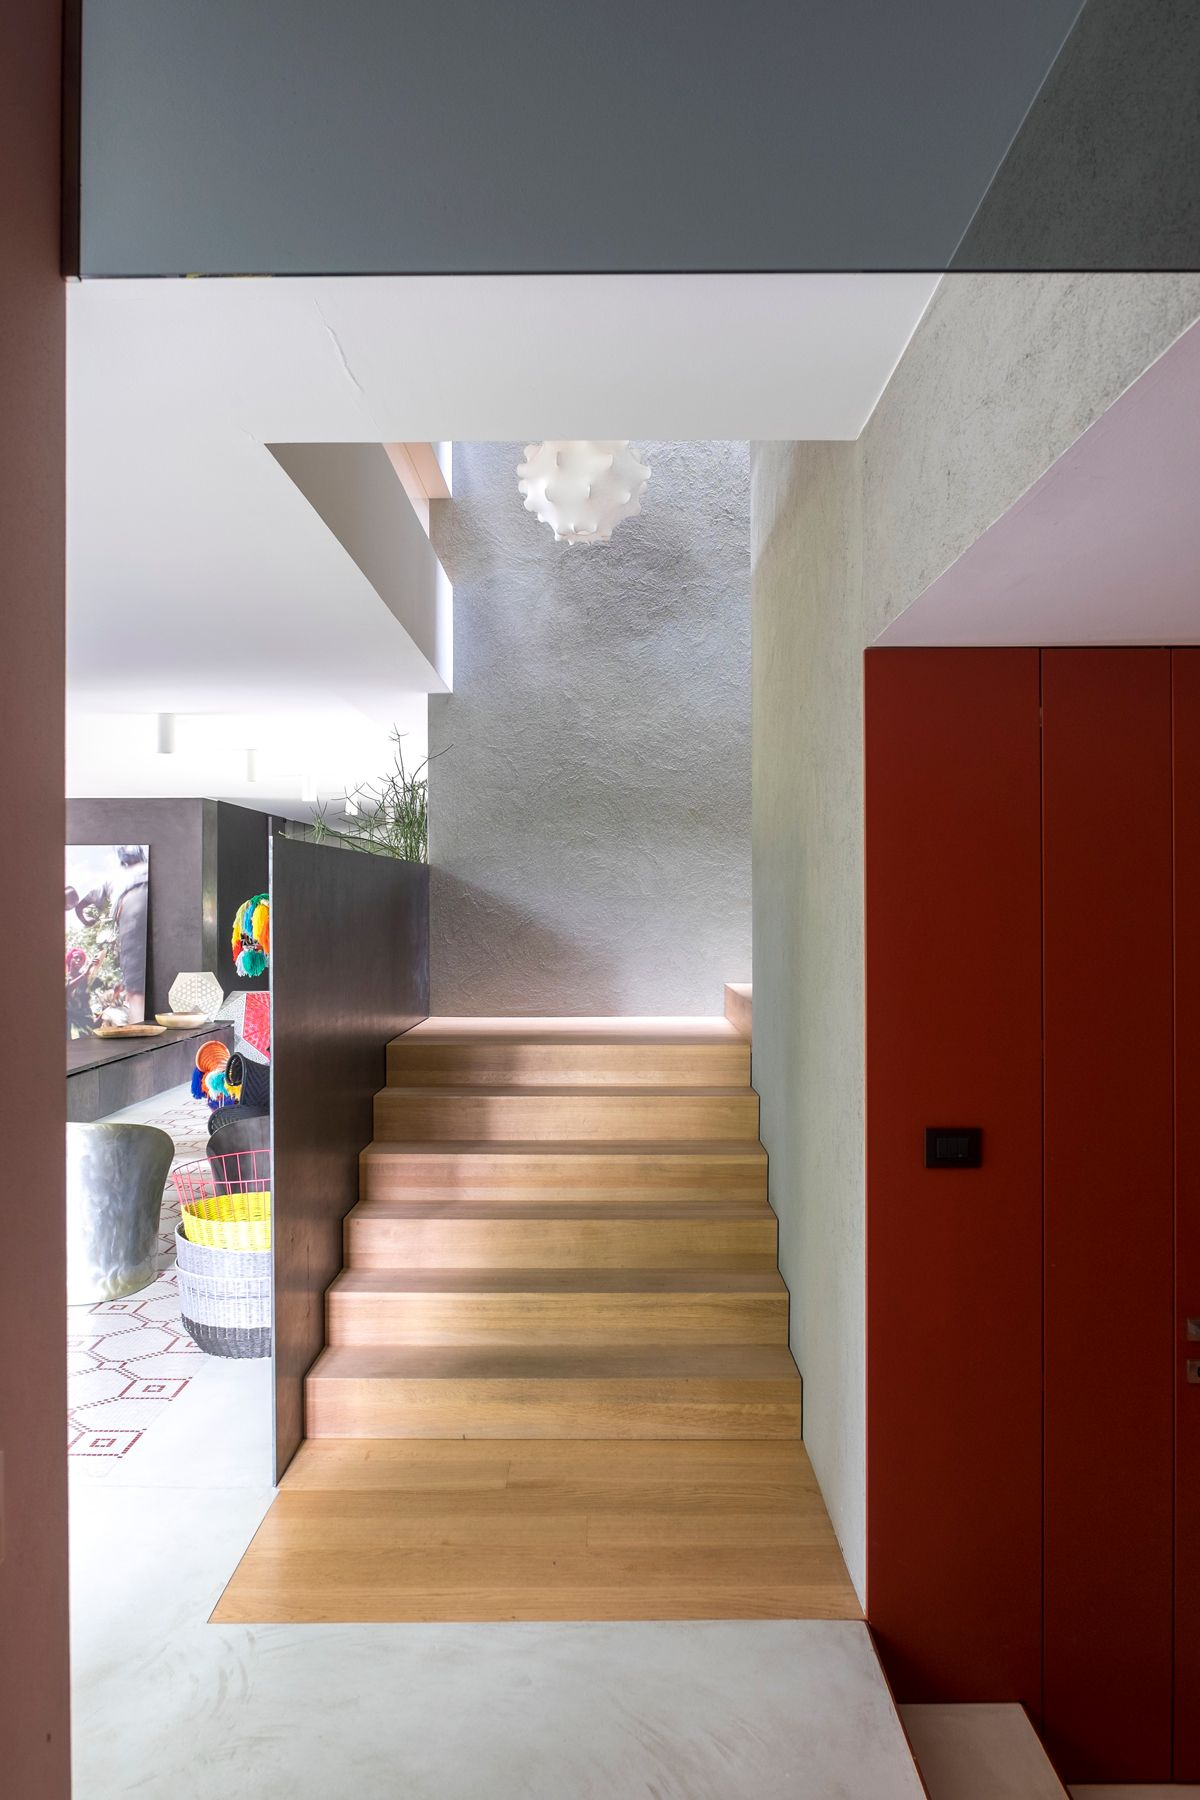 Striking Staircase Ideas Beautiful Design Of Staircase And Stairs Livingetc Livingetcdocument Documenttype